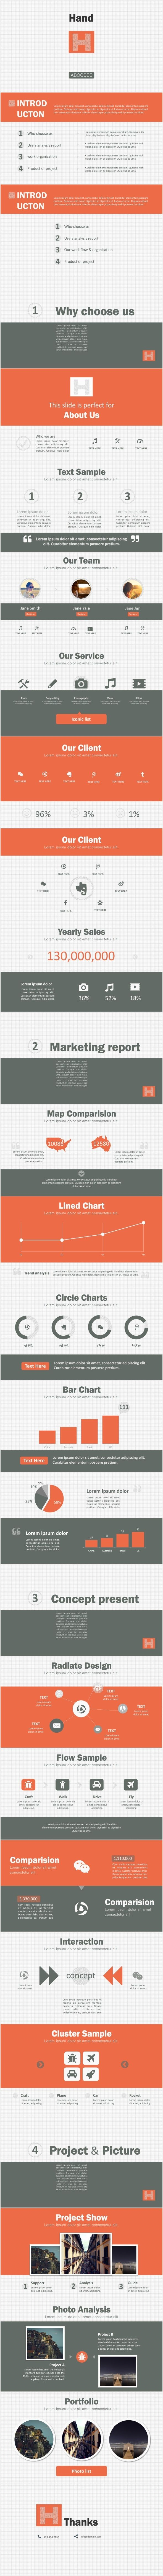 Best Powerpoint Presentation Templates Images On